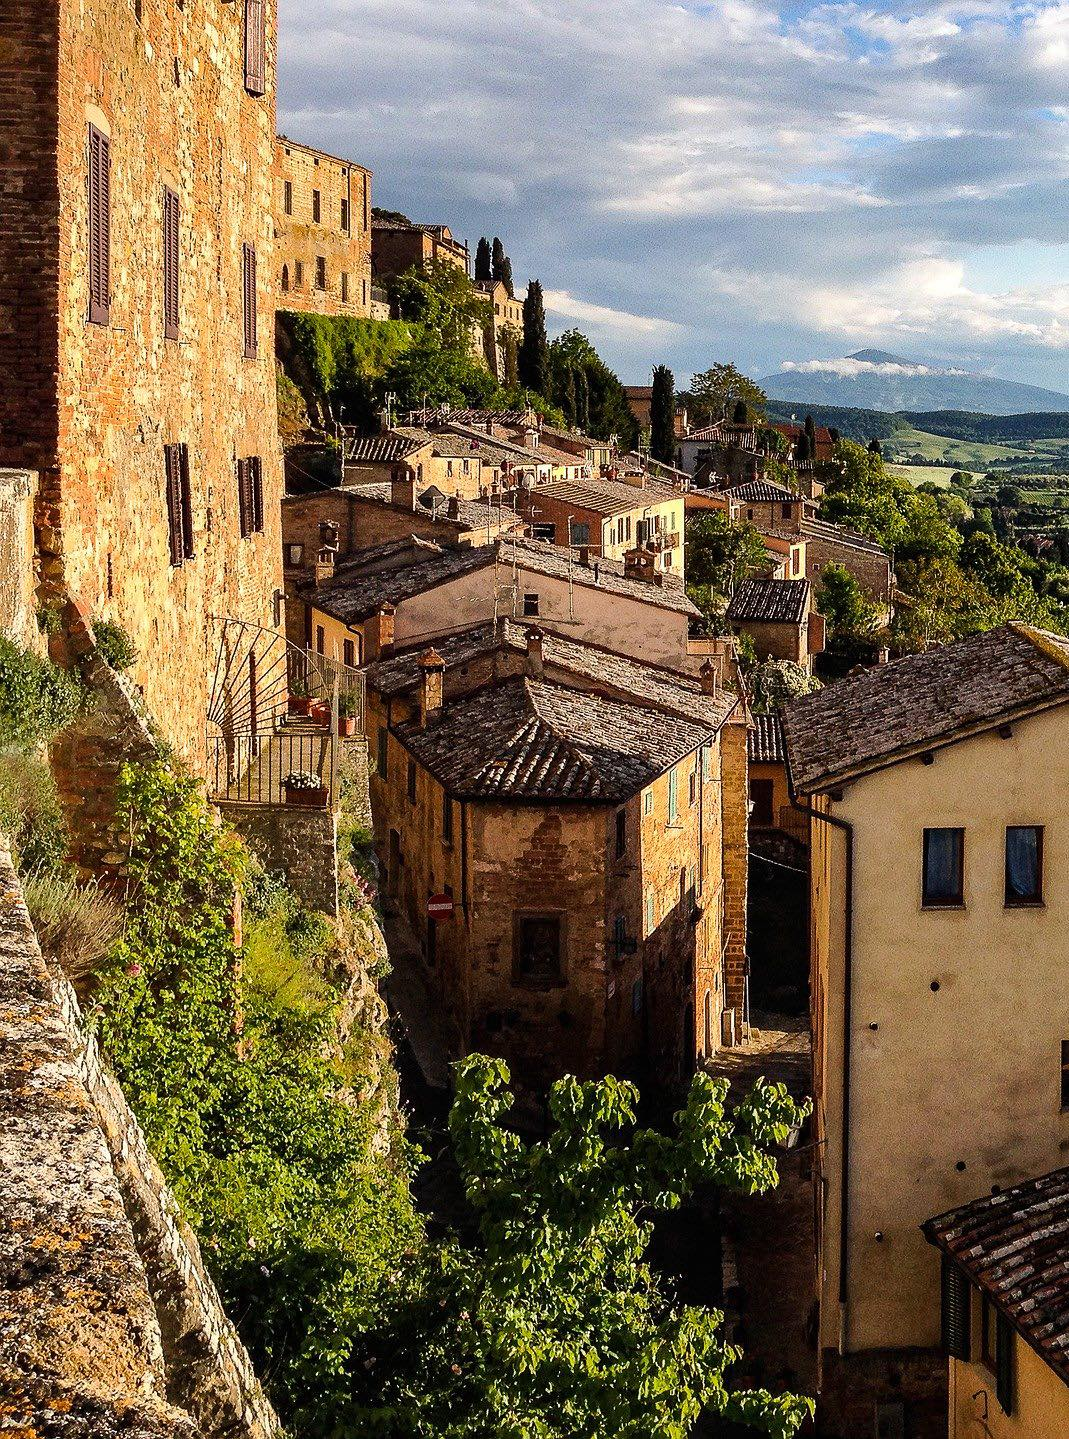 A view of Montepulciano in Tuscany